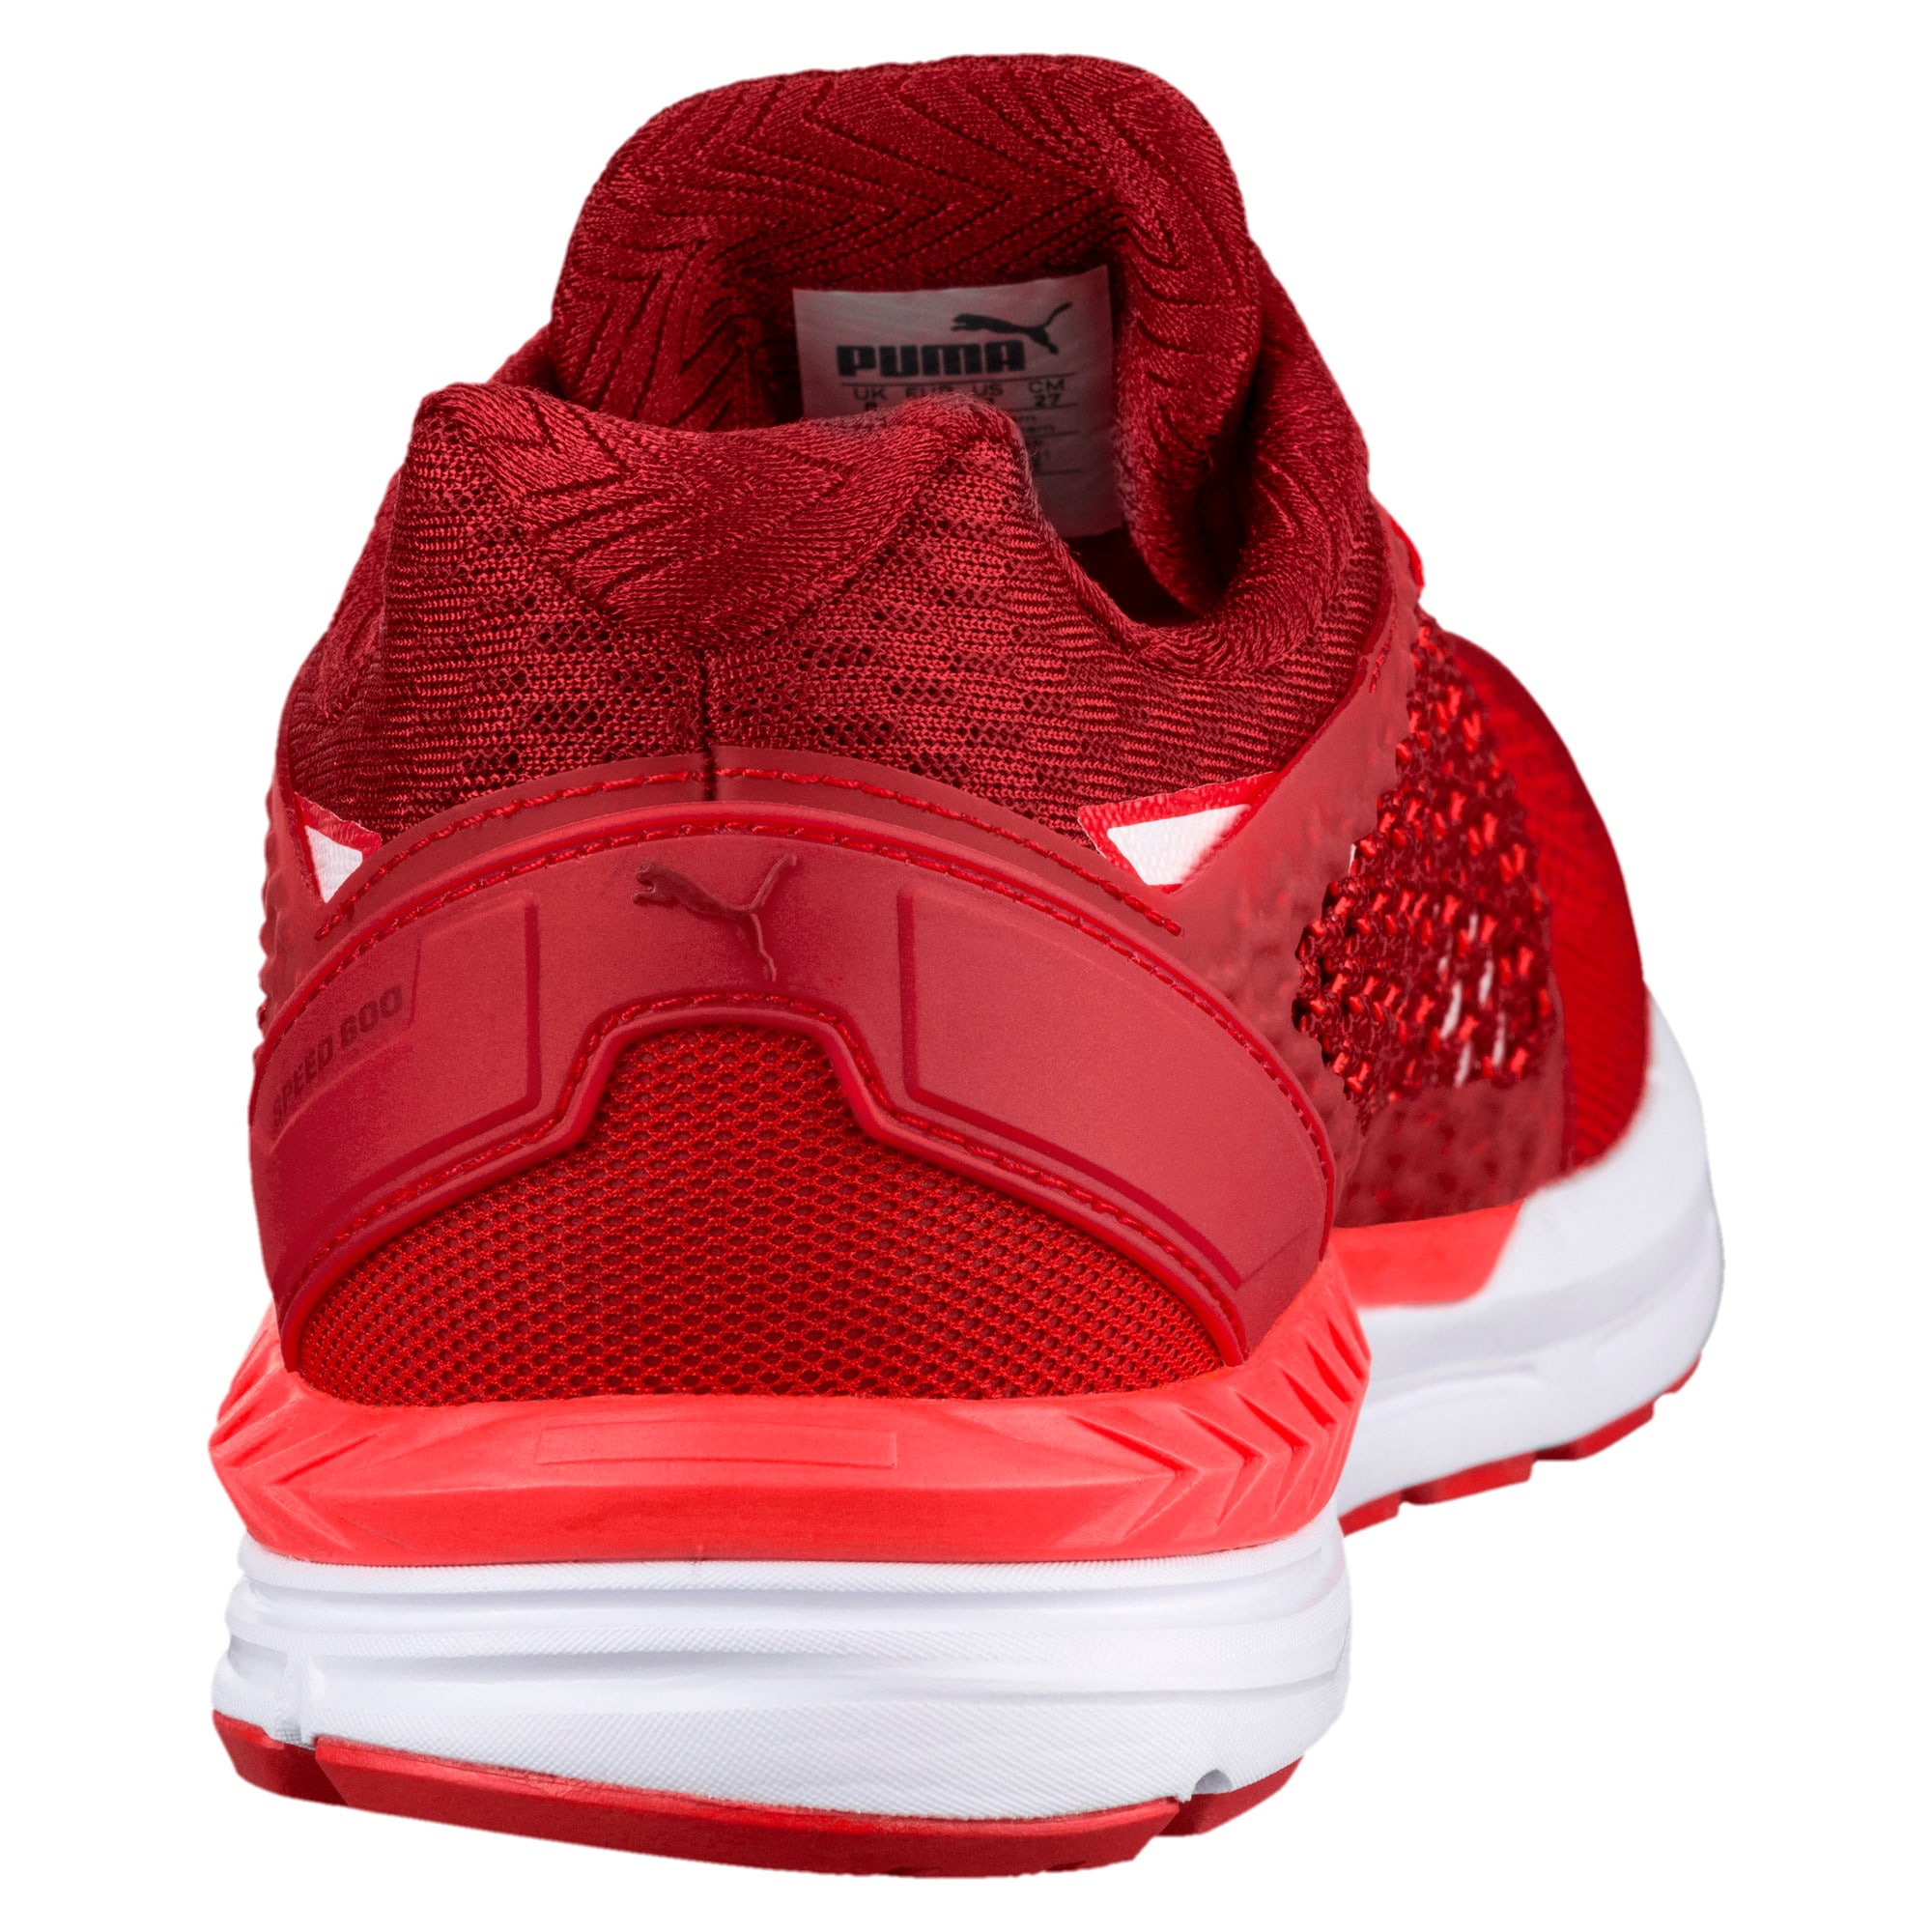 Thumbnail 4 of Speed 600 IGNITE 3 Men's Running Shoes, Scarlet-Red Dahlia-White, medium-IND